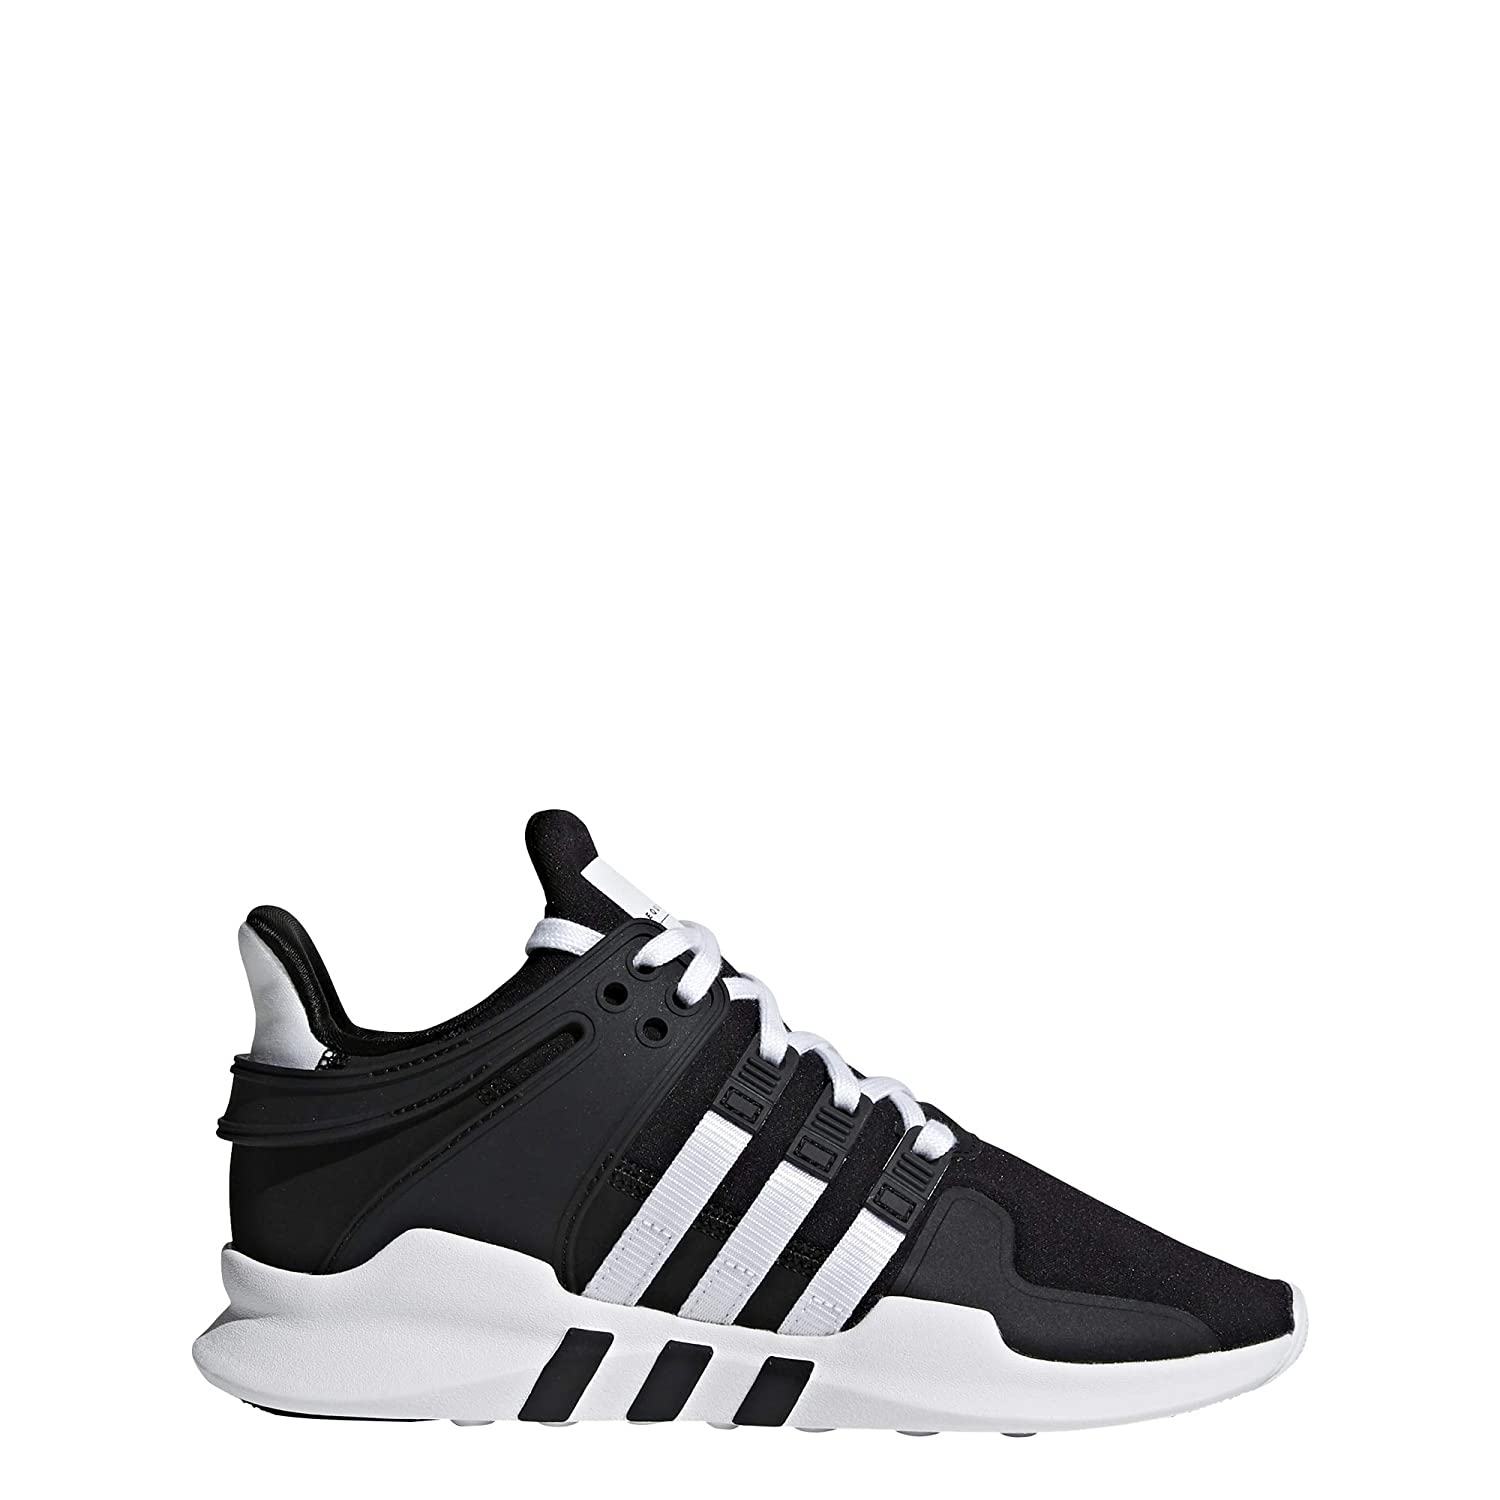 huge discount 93956 1a2cd adidas Unisex Kids' EQT Support Adv J Fitness Shoes Grey ...